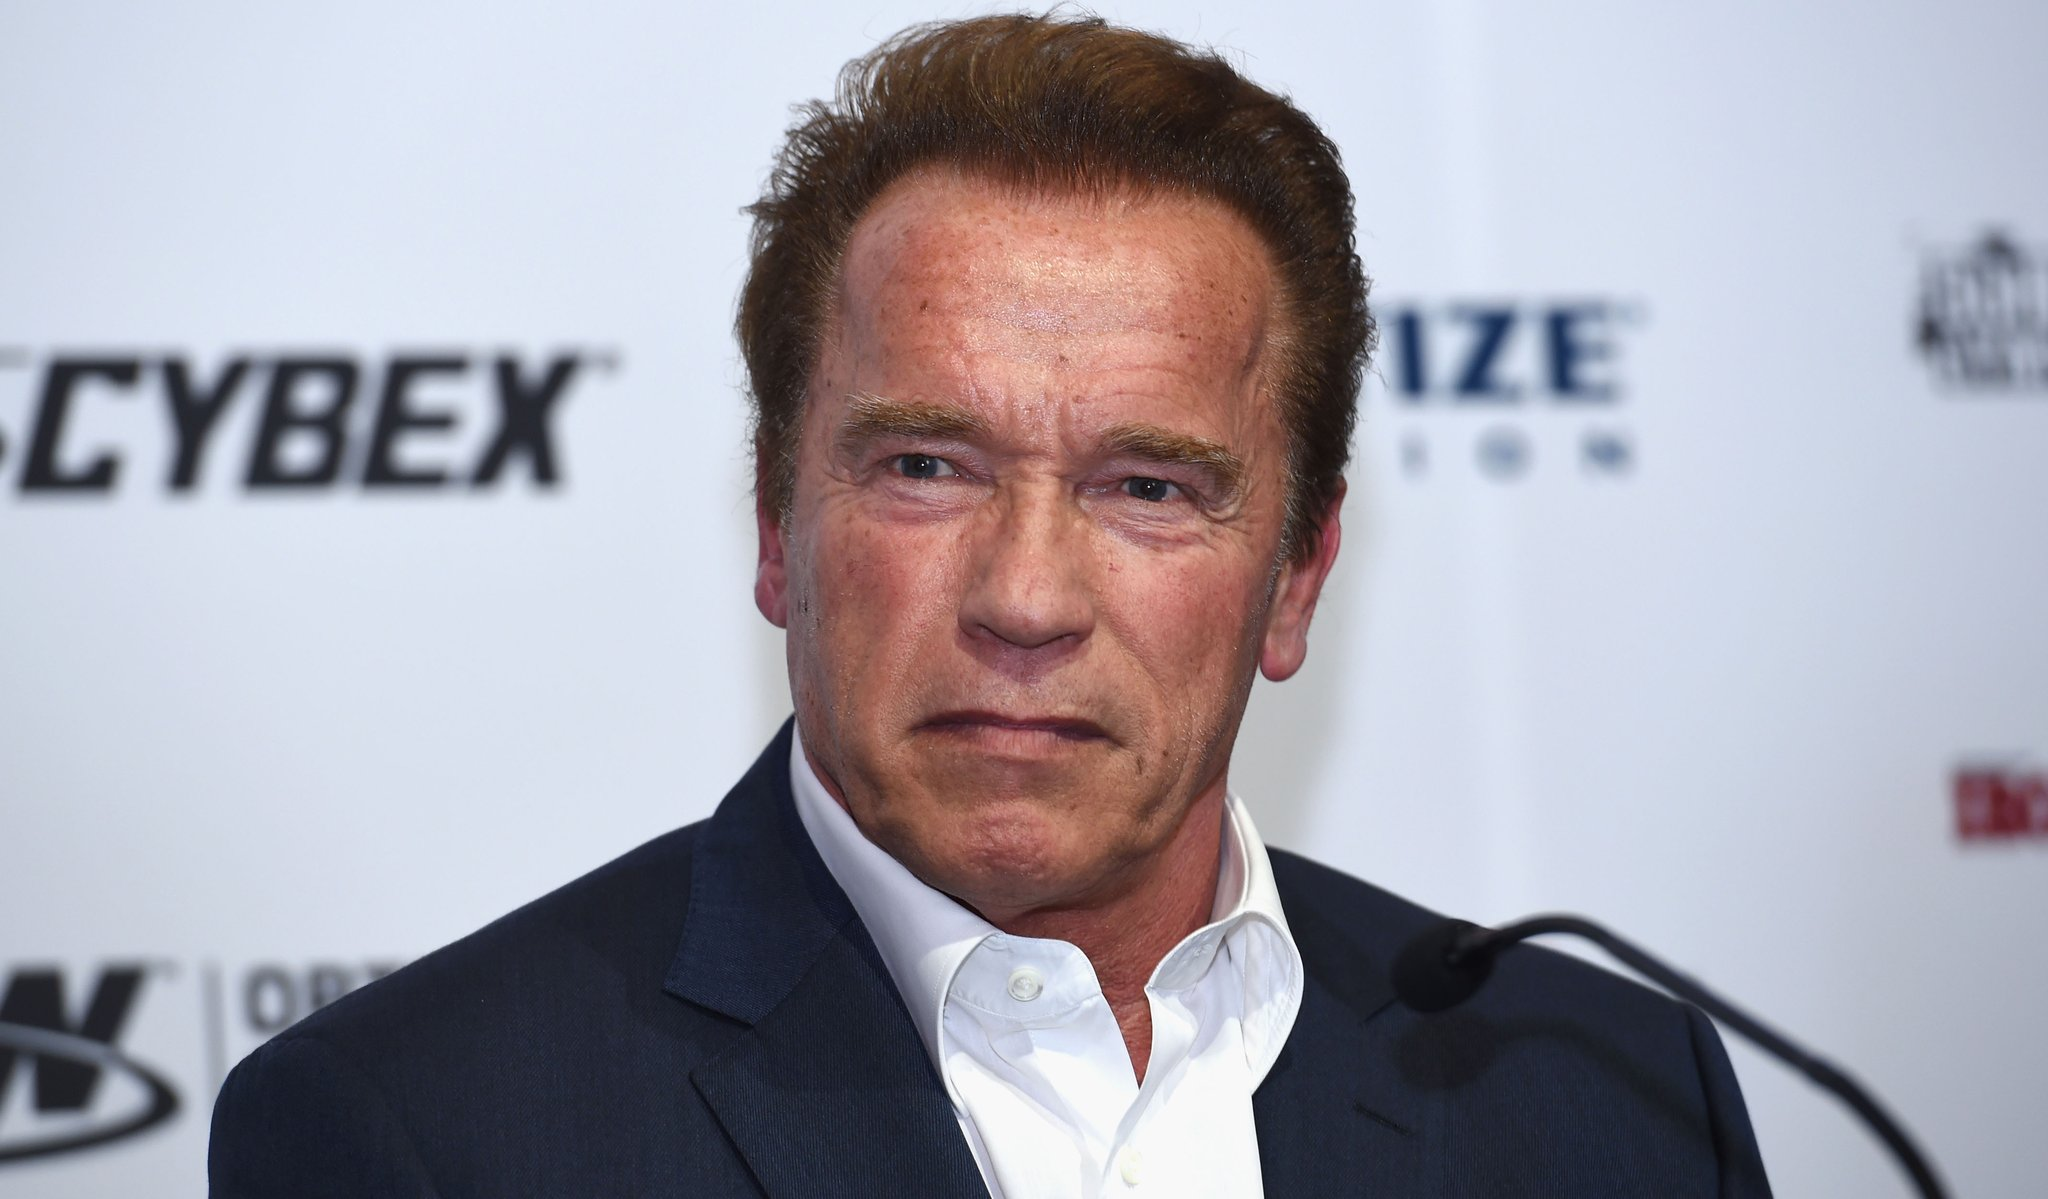 Arnold Schwarzenegger Promotes Gas Guzzling Helicopter Ride over LA While Suing Oil Companies for Murder